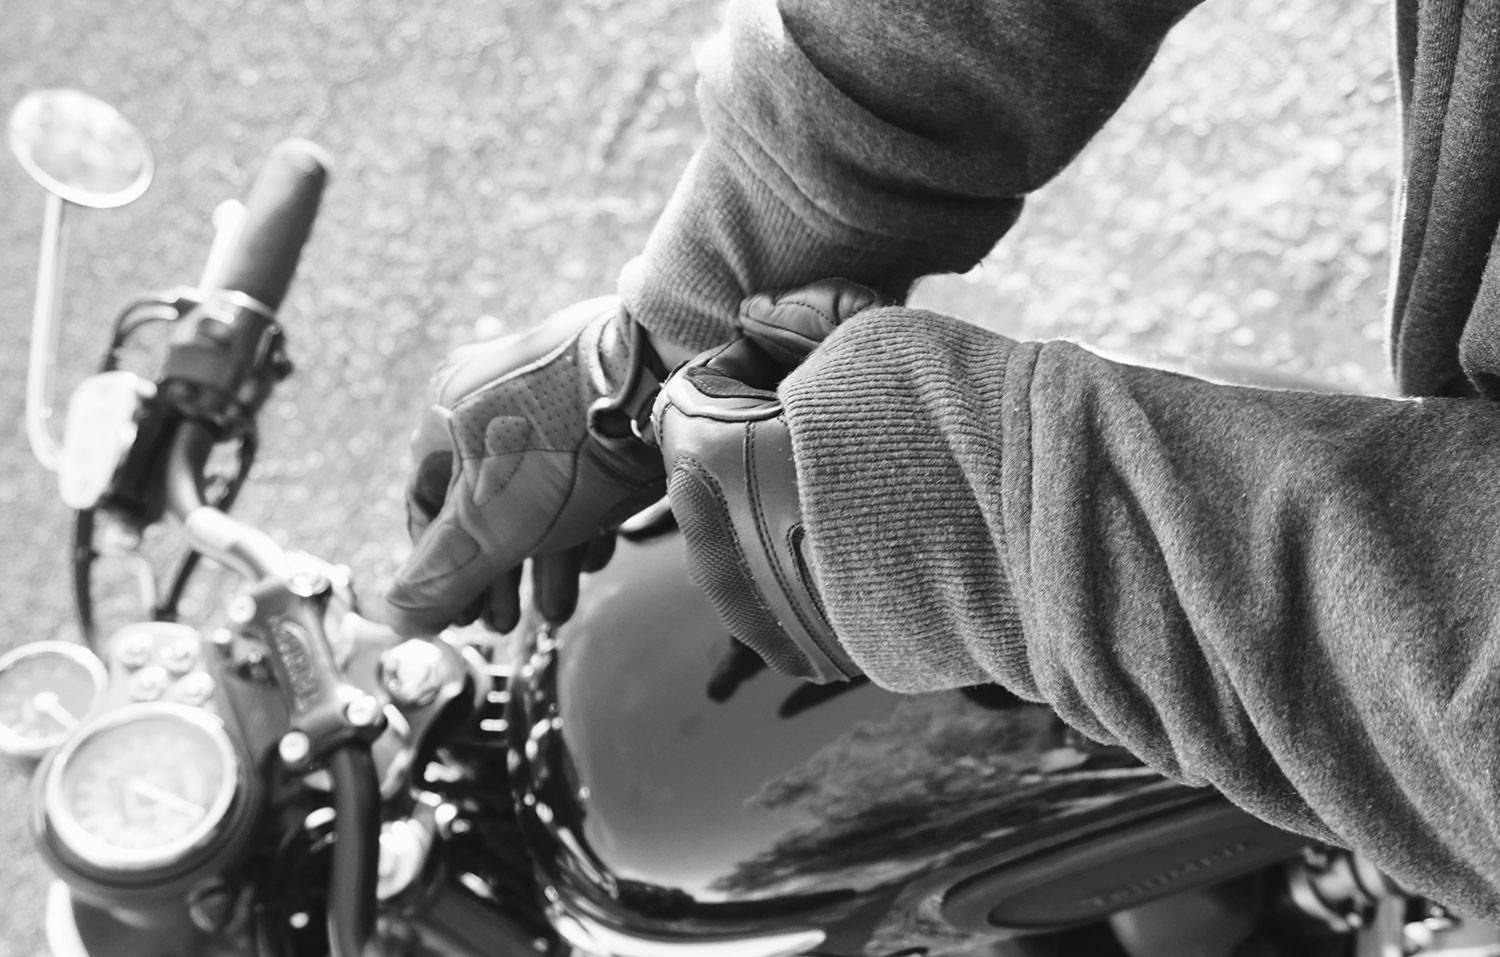 Motorcycle Gloves - Guide to buy motorcycle clothing gear